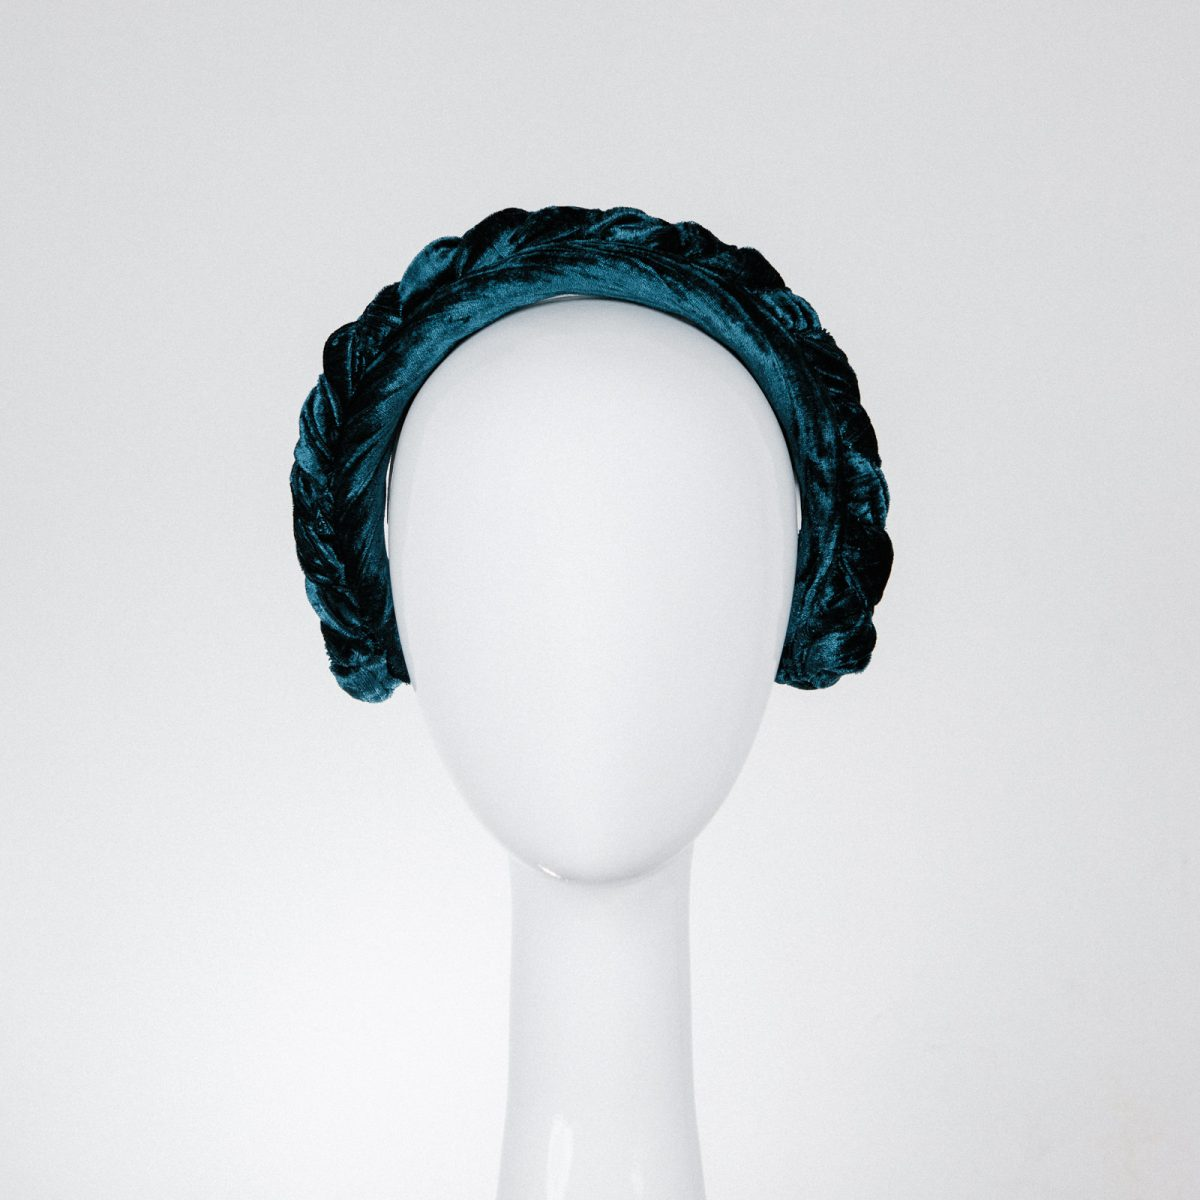 Braided Teal Blue Velvet Headband